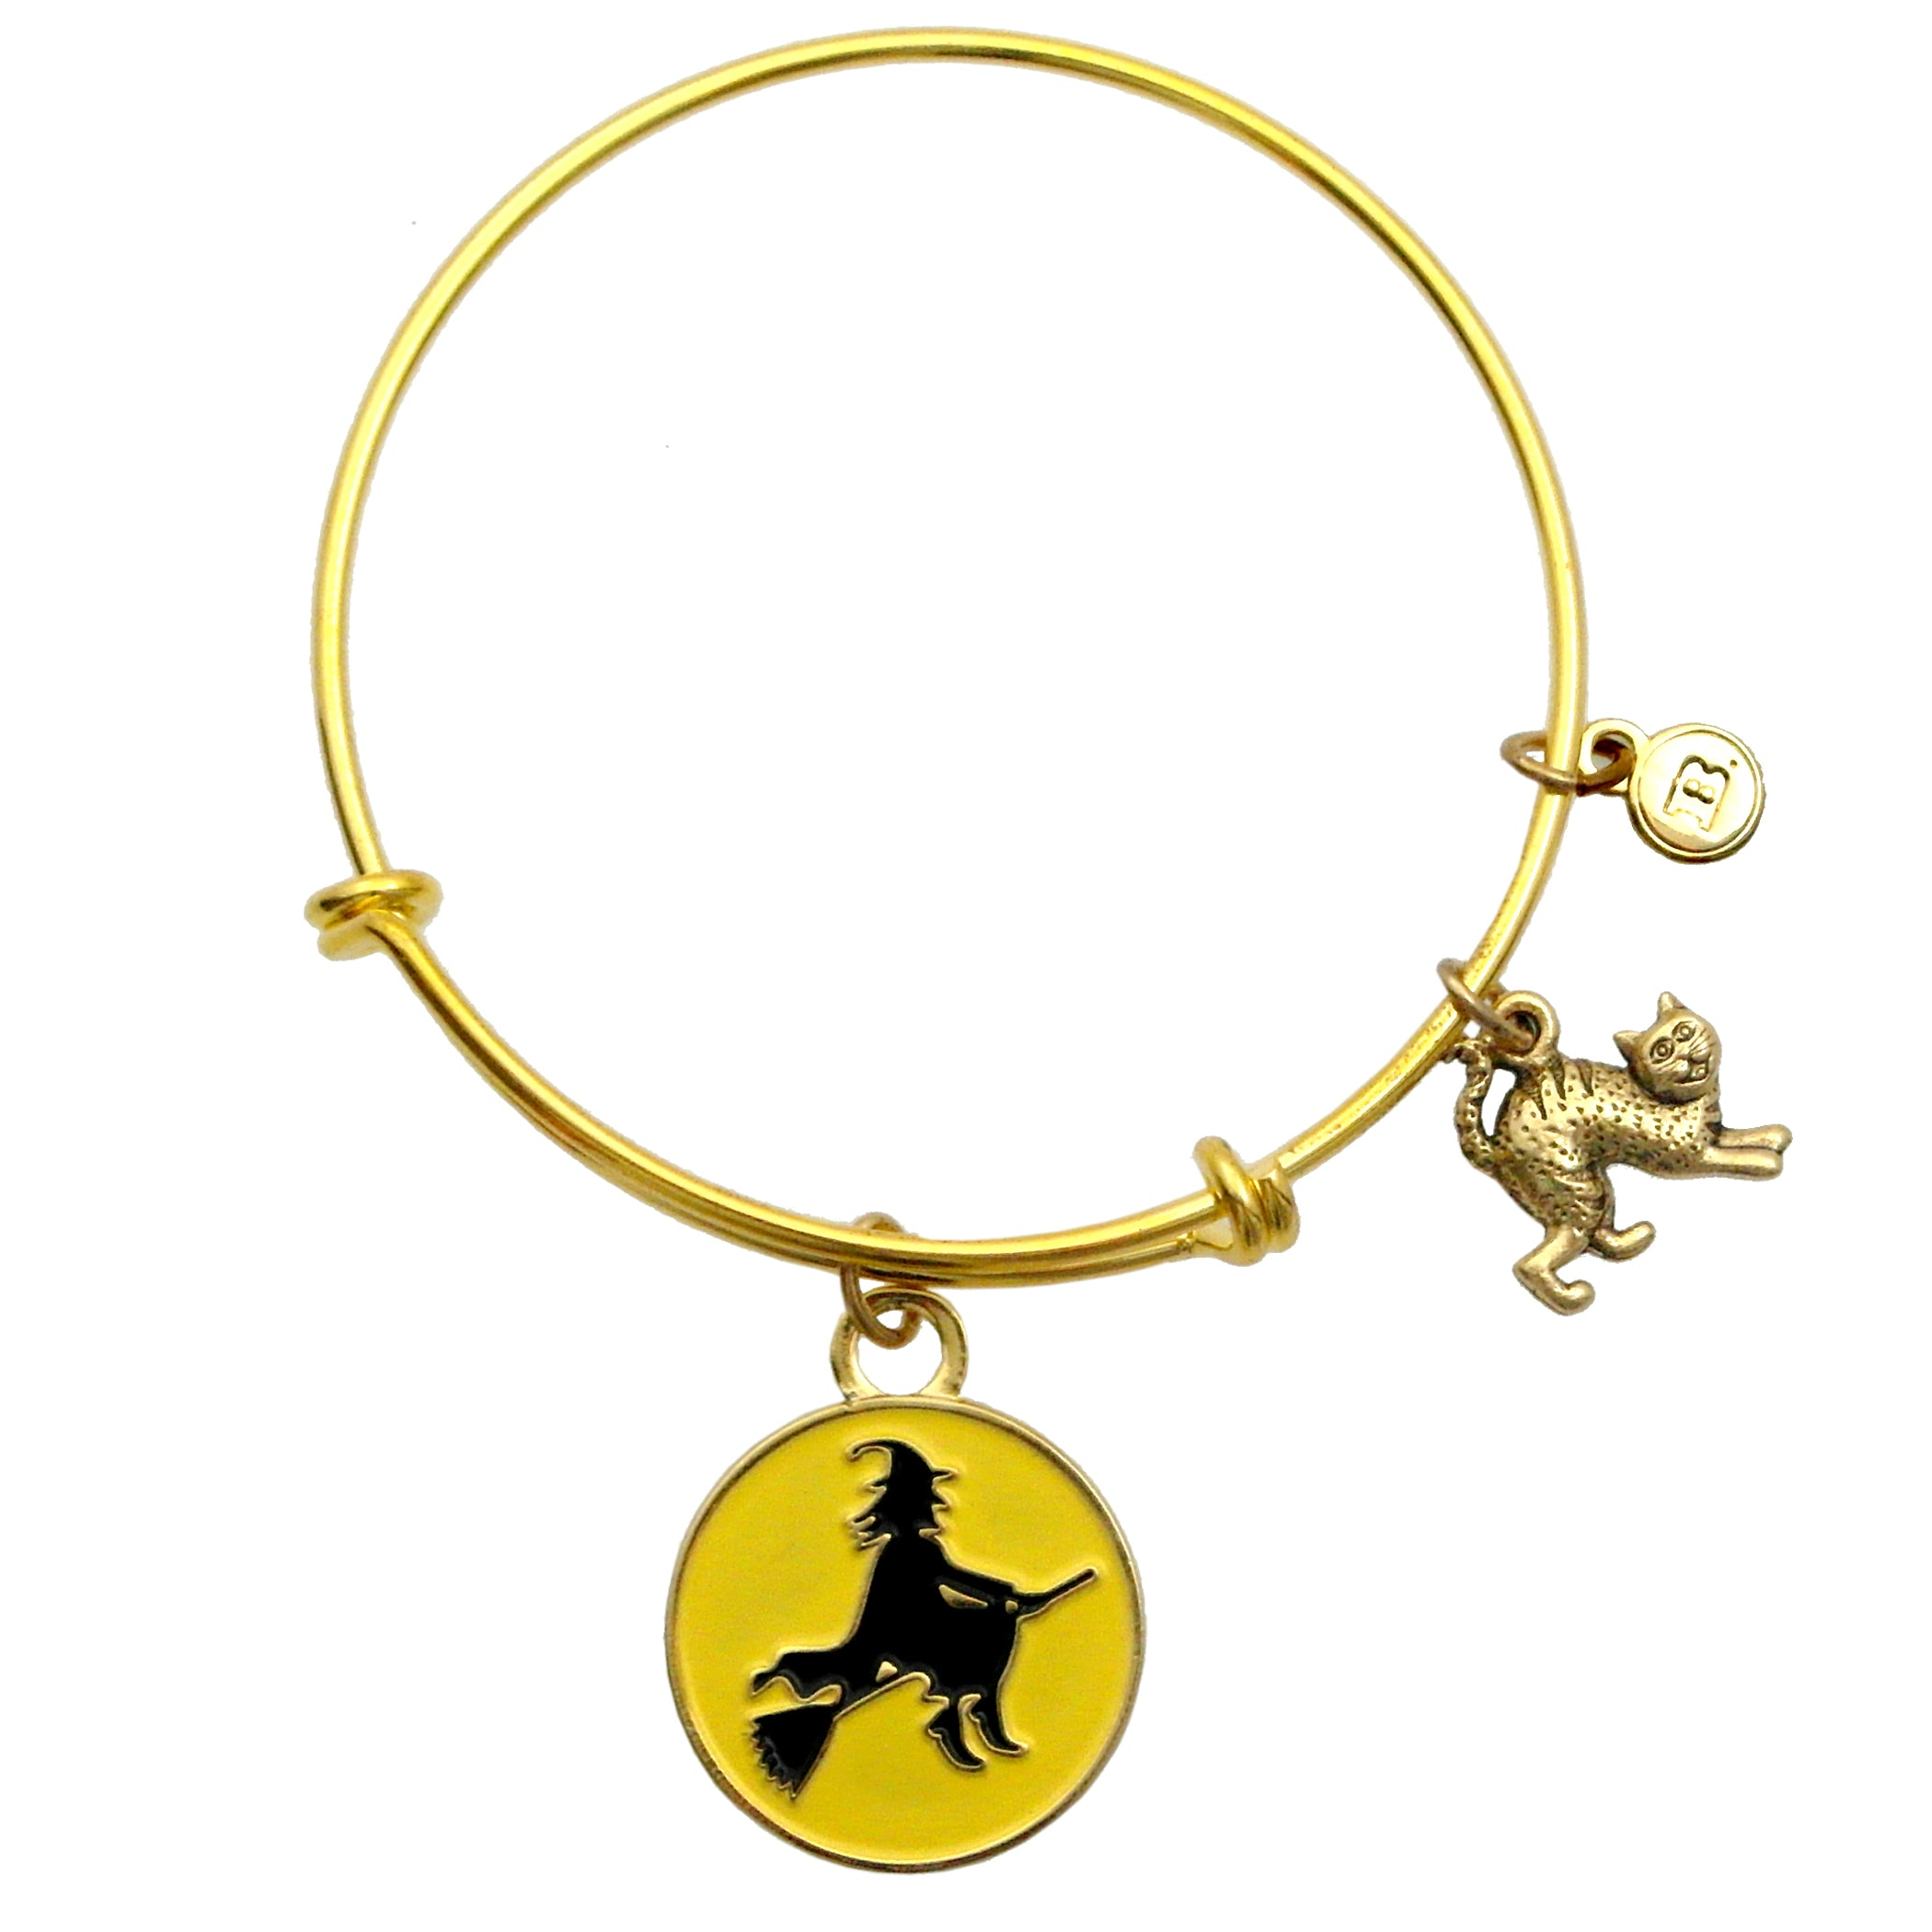 gold jewelry jessica stars and charm bracelet dsc hearts winzelberg yellow products jewellery